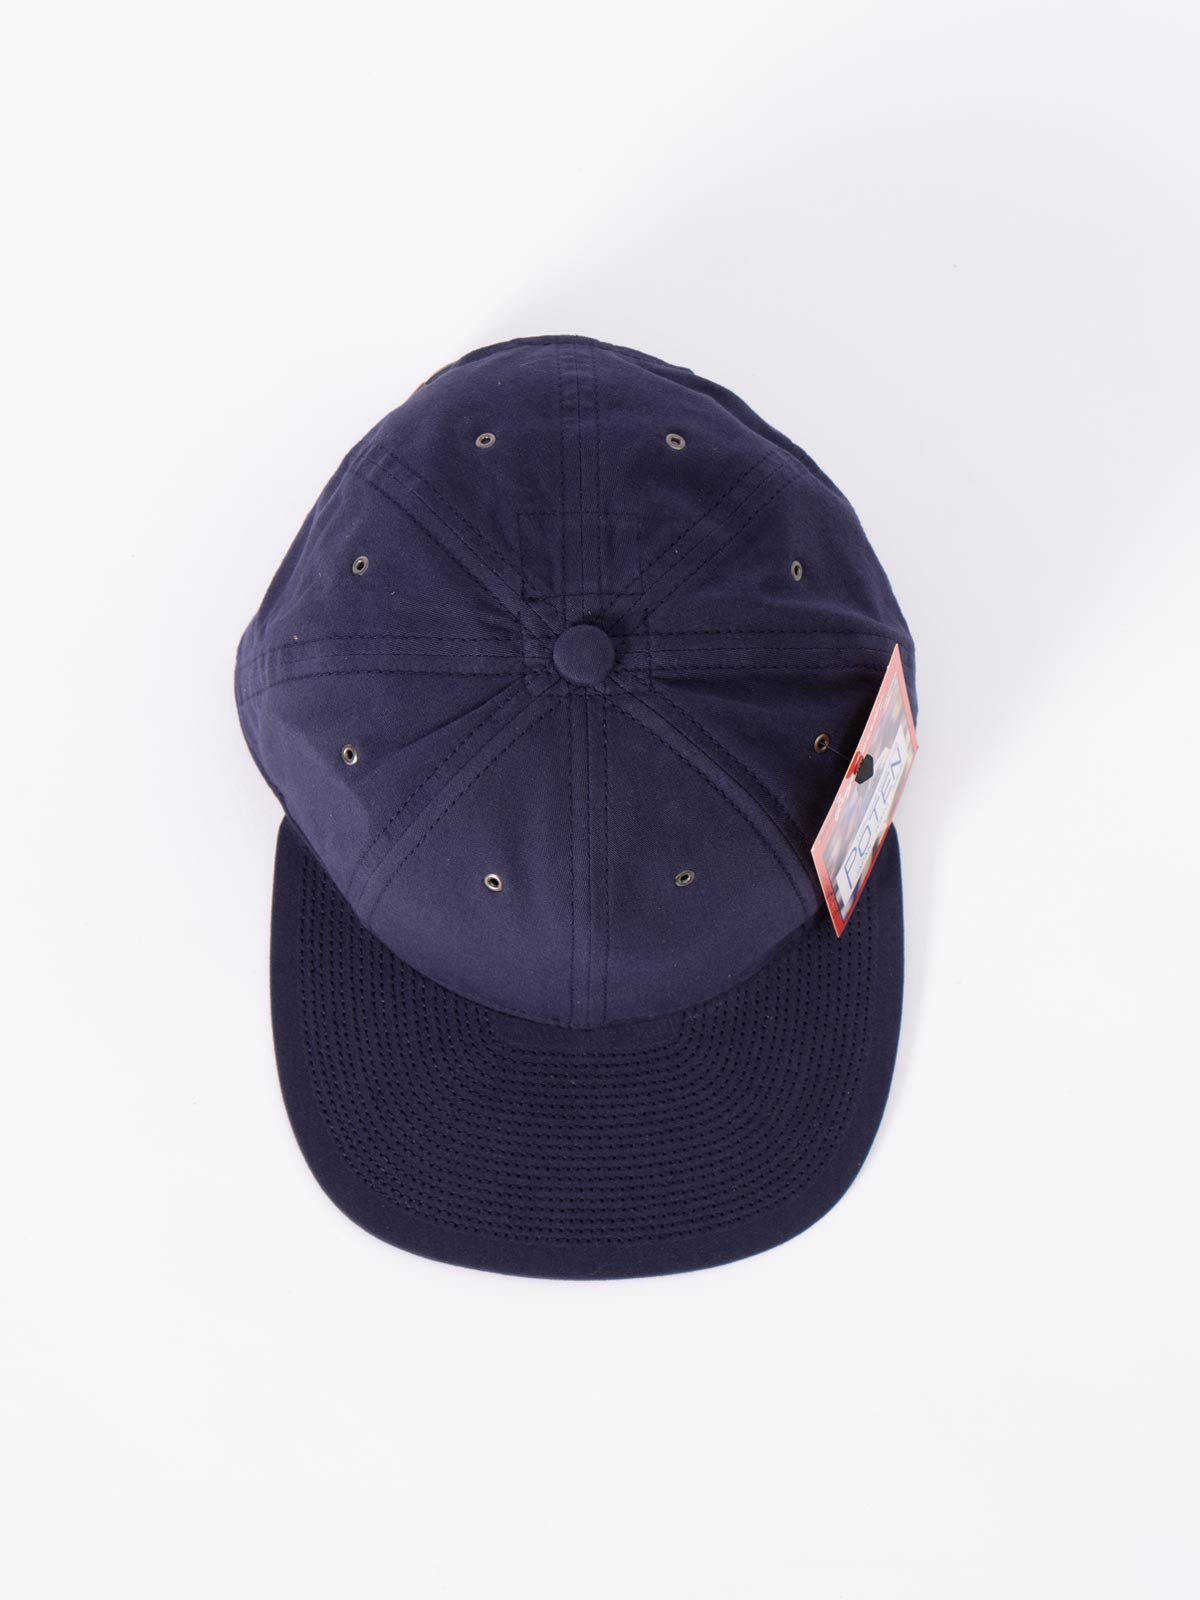 NAVY WASHED COTTON CAP - Image 3